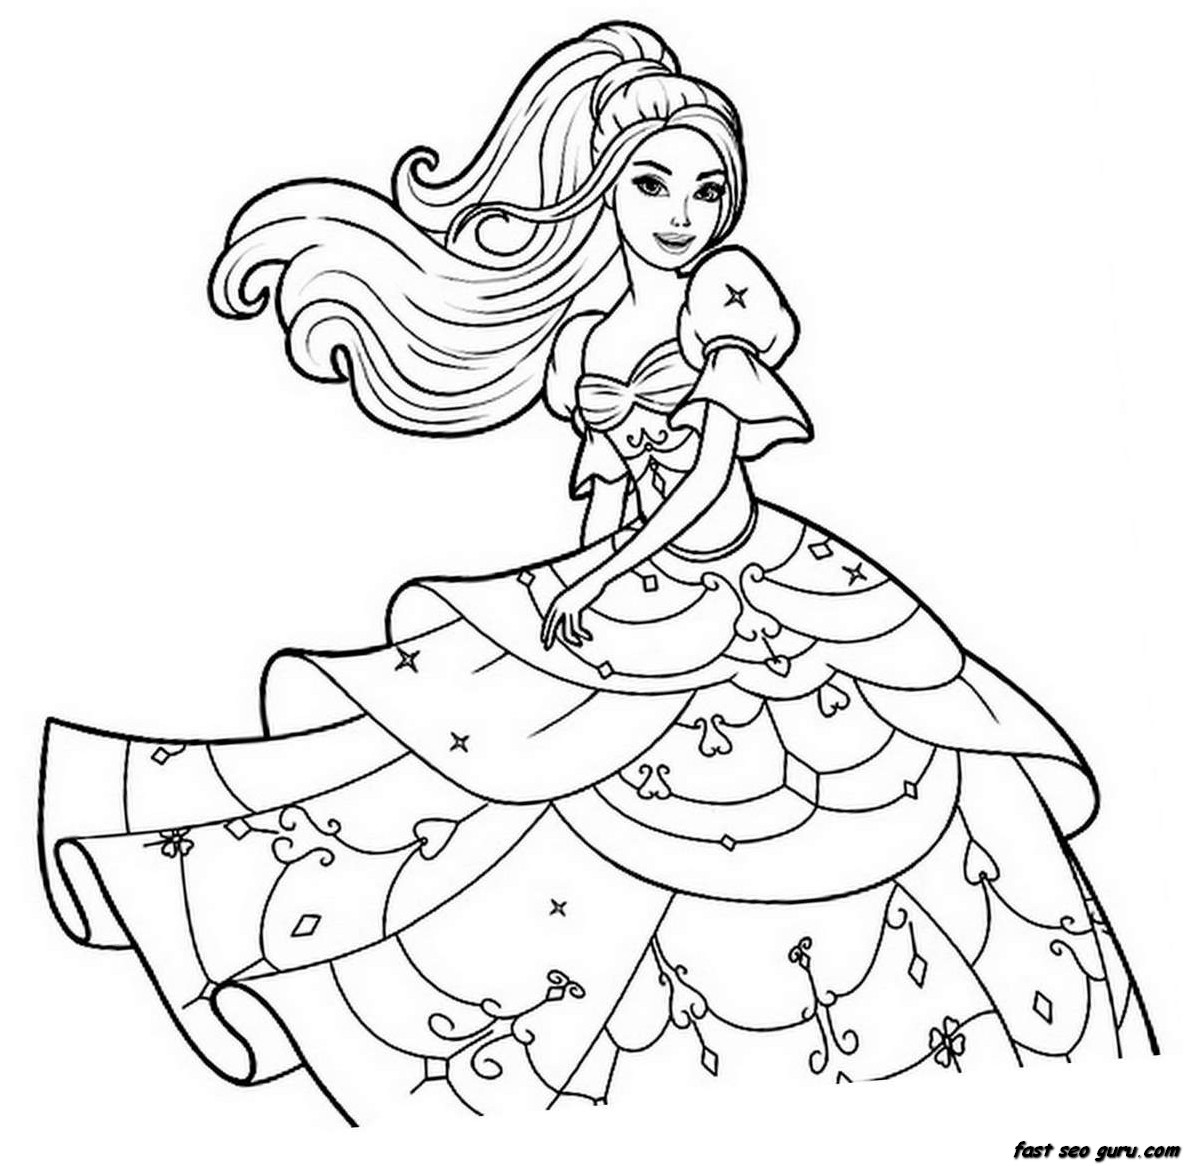 Coloring pages to print for girls - Coloring Pages For Girls